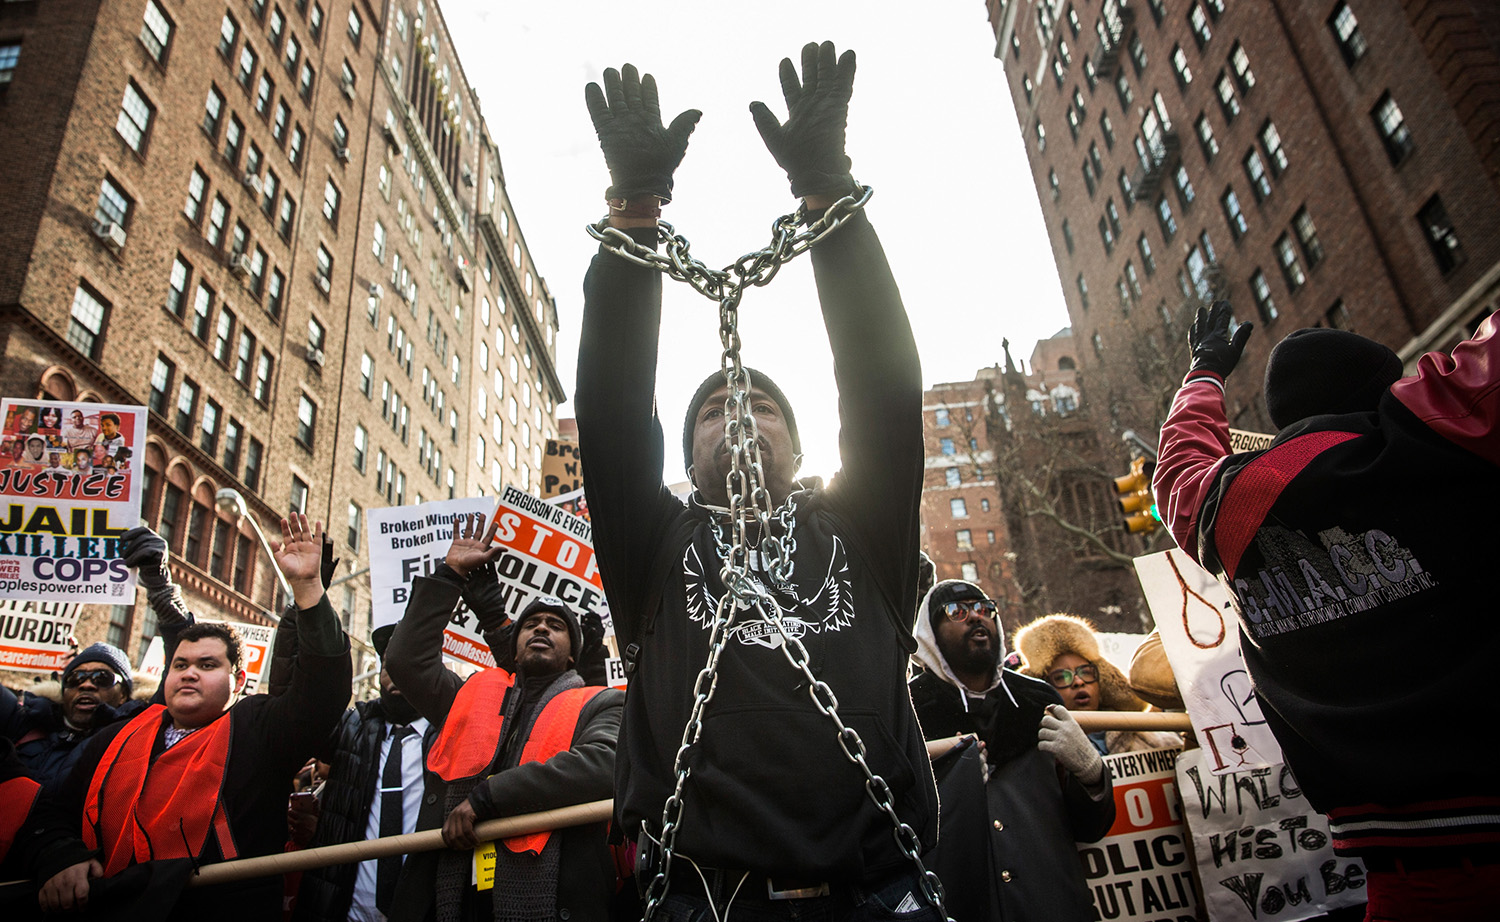 A man is wrapped in chains as people march in the National March Against Police Violence, which was organized by National Action Network, through the streets of Manhattan on December 13, 2014 in New York City.